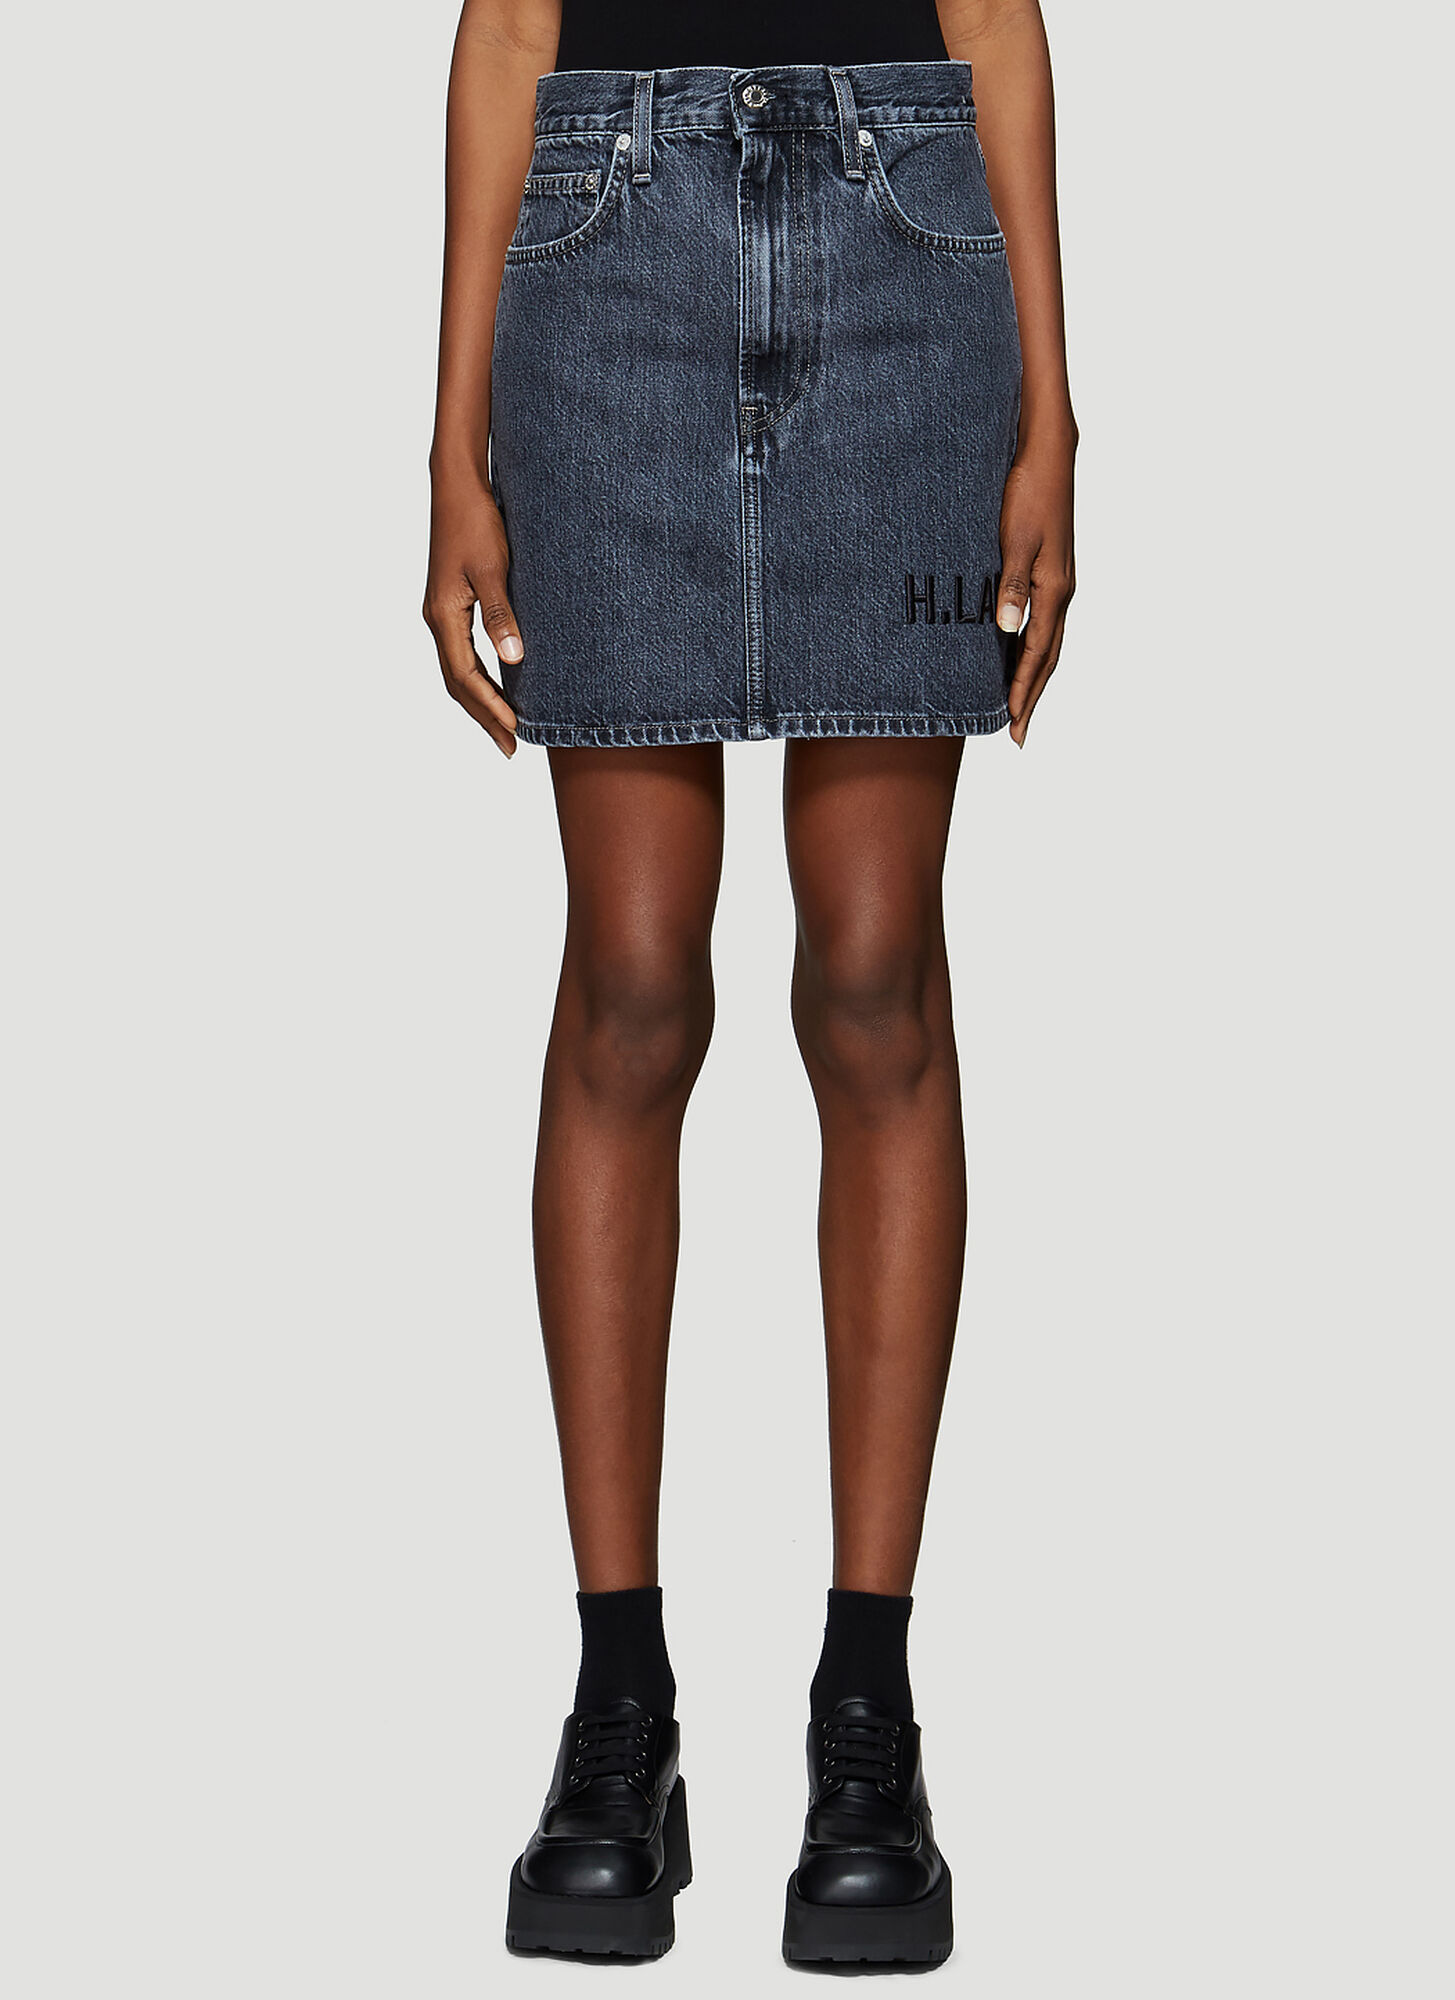 Helmut Lang Femme Denim Skirt in Blue